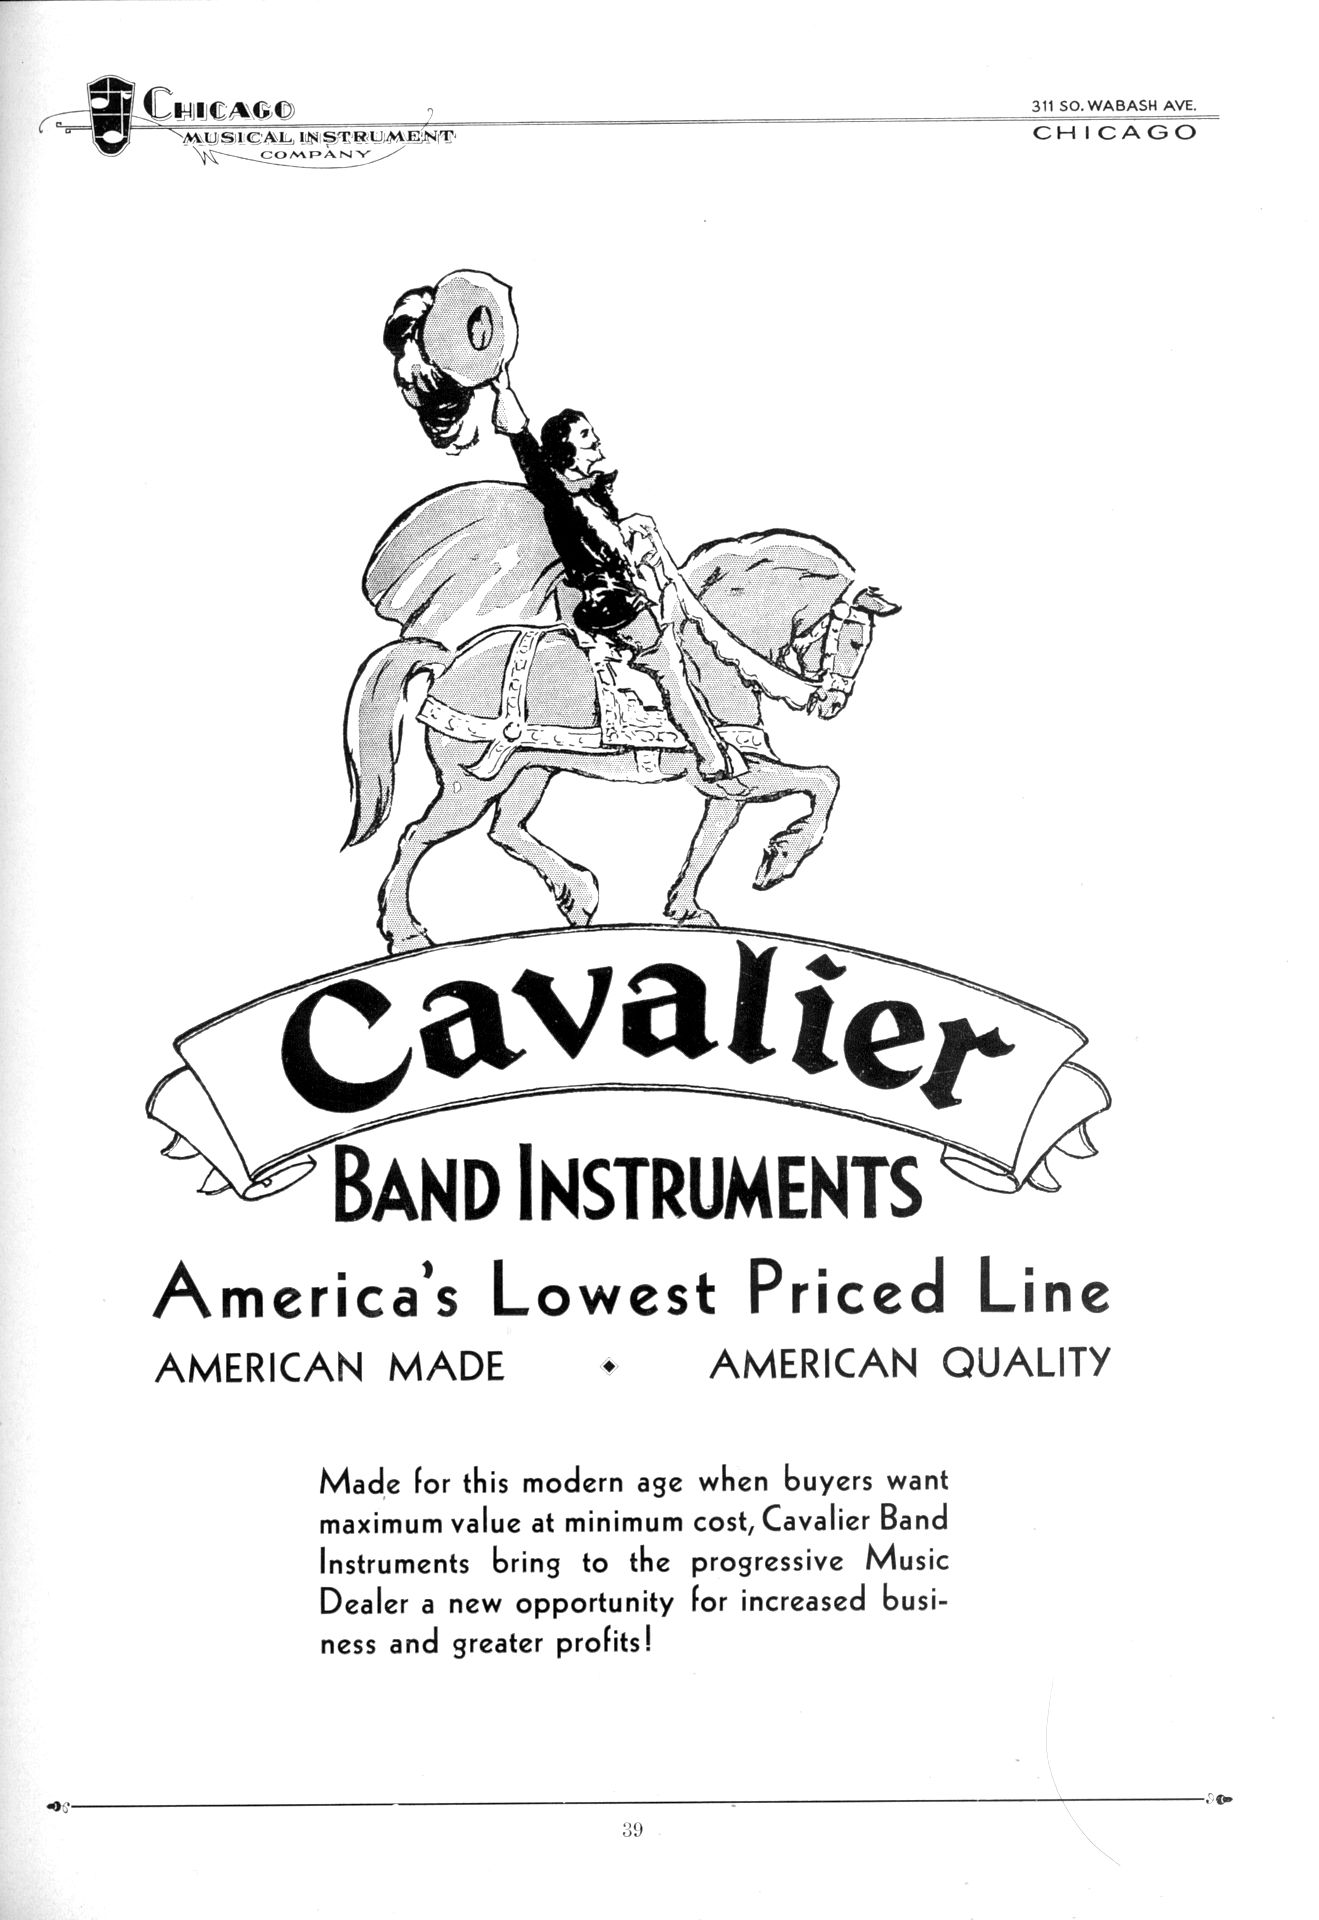 Cavalier Band Instruments, vintage catalogue, 1931, Cavalier saxophones, Pan American, Conn, Chicago Musical Instrument Company